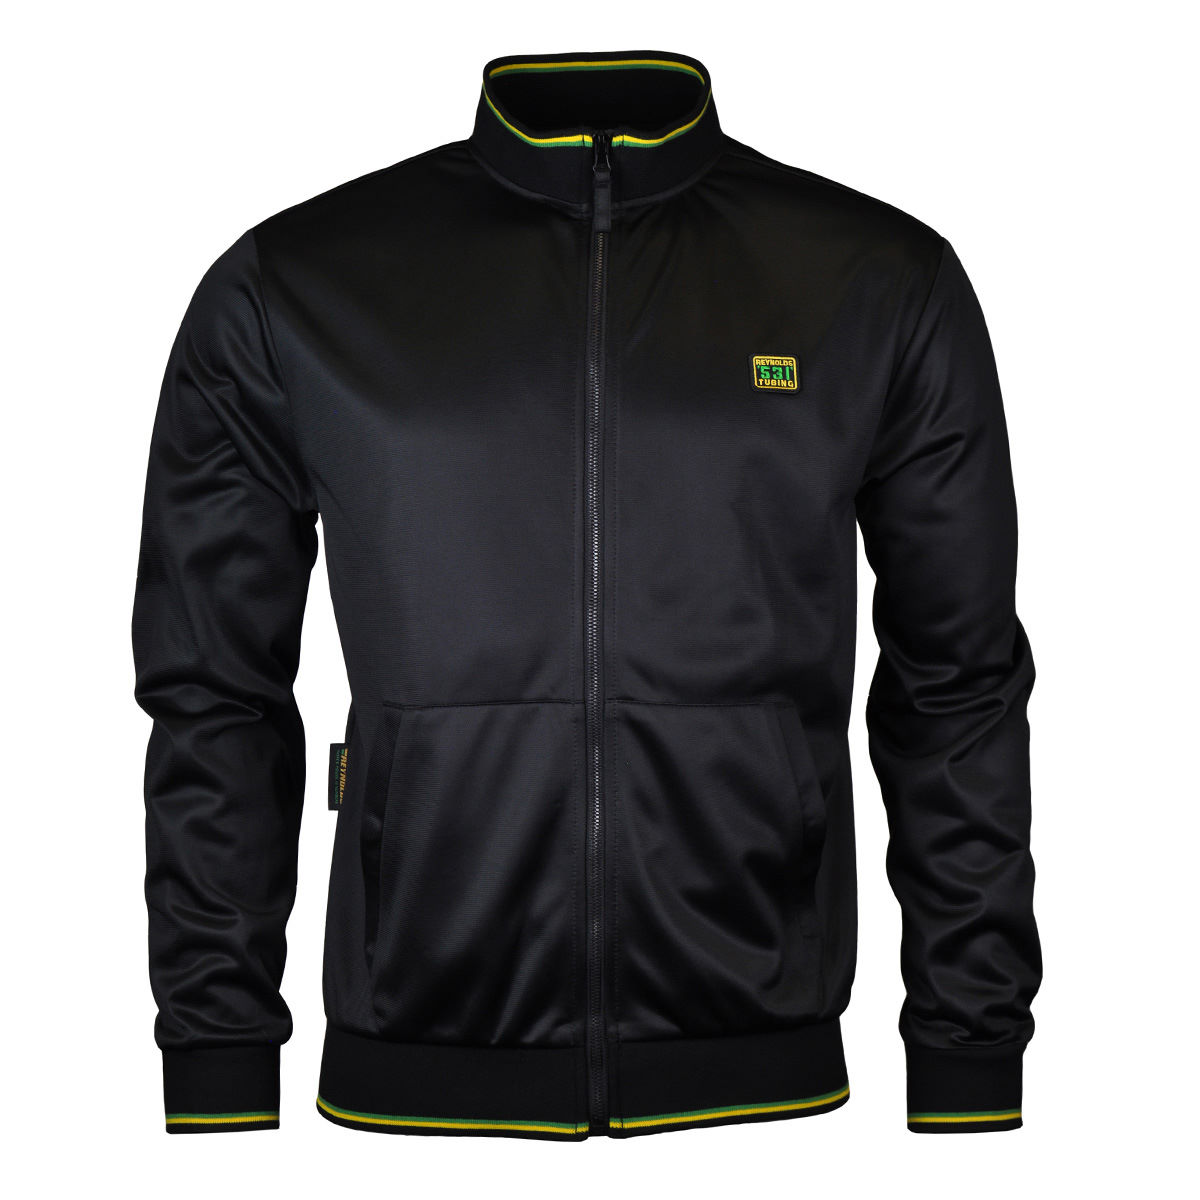 Reynolds Clothing 531 Tipped Full Zip Track Top - Chaquetas